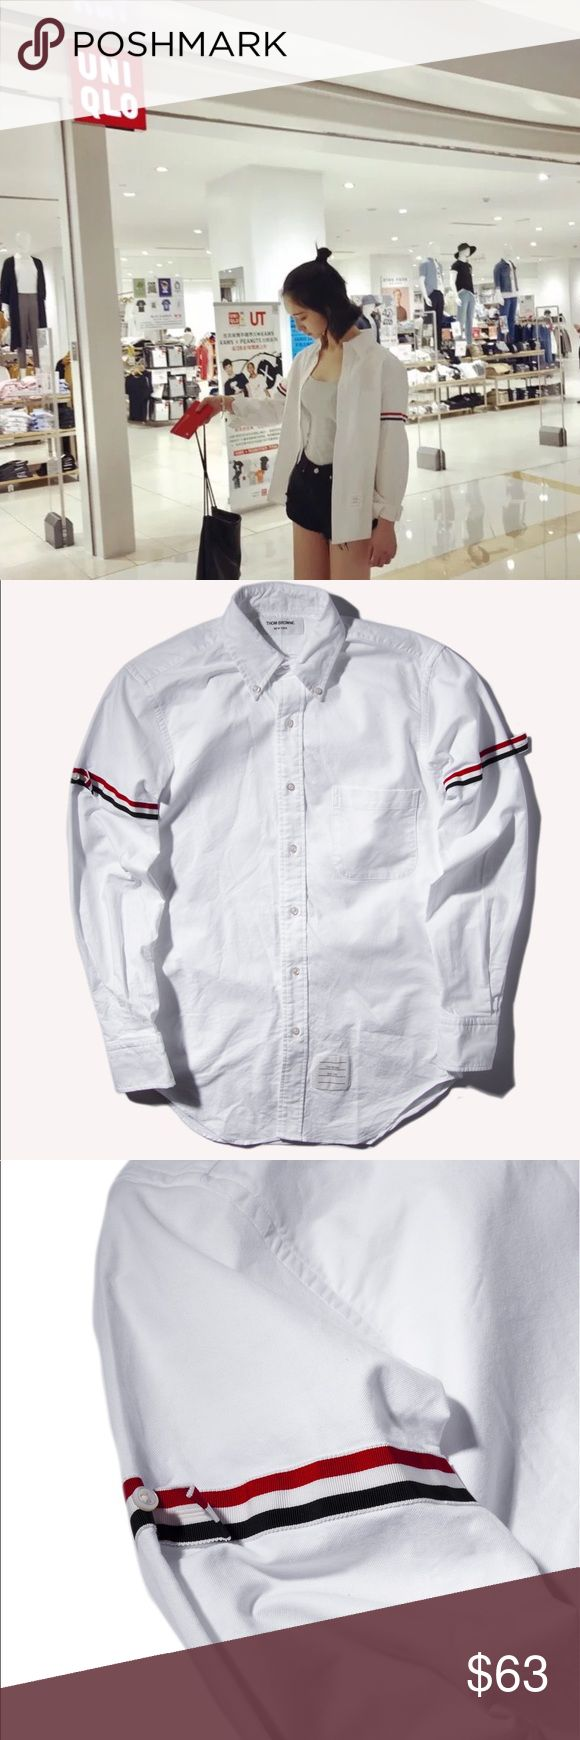 TB Classic Armband Stripe Classic Oxford Shirt 😍 Unisex sizes are available. (0-4).  Very fitted, or worn oversized.  Recommended sizes for women (0-2). Ex. Ht/Wt 5'4 125/130 - size (0) for fitted and size 1 for loose fit.   Mens recommended size (2-3) for fitted. (4) for loose fit.   Sizing questions please email me - dandyshop17@gmail.com  Online website - www.dandyshop17.com Thom Browne Tops Button Down Shirts